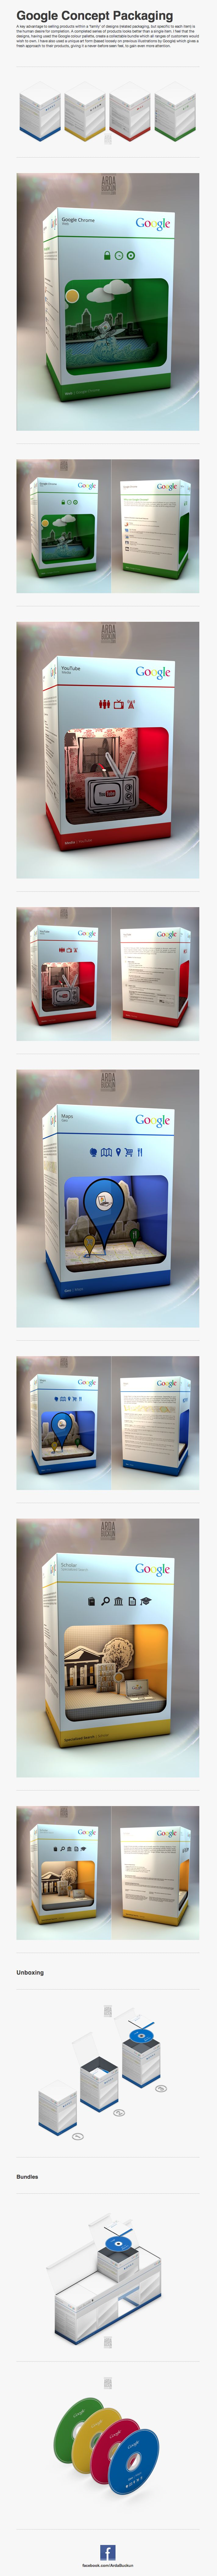 Google Concept Packaging